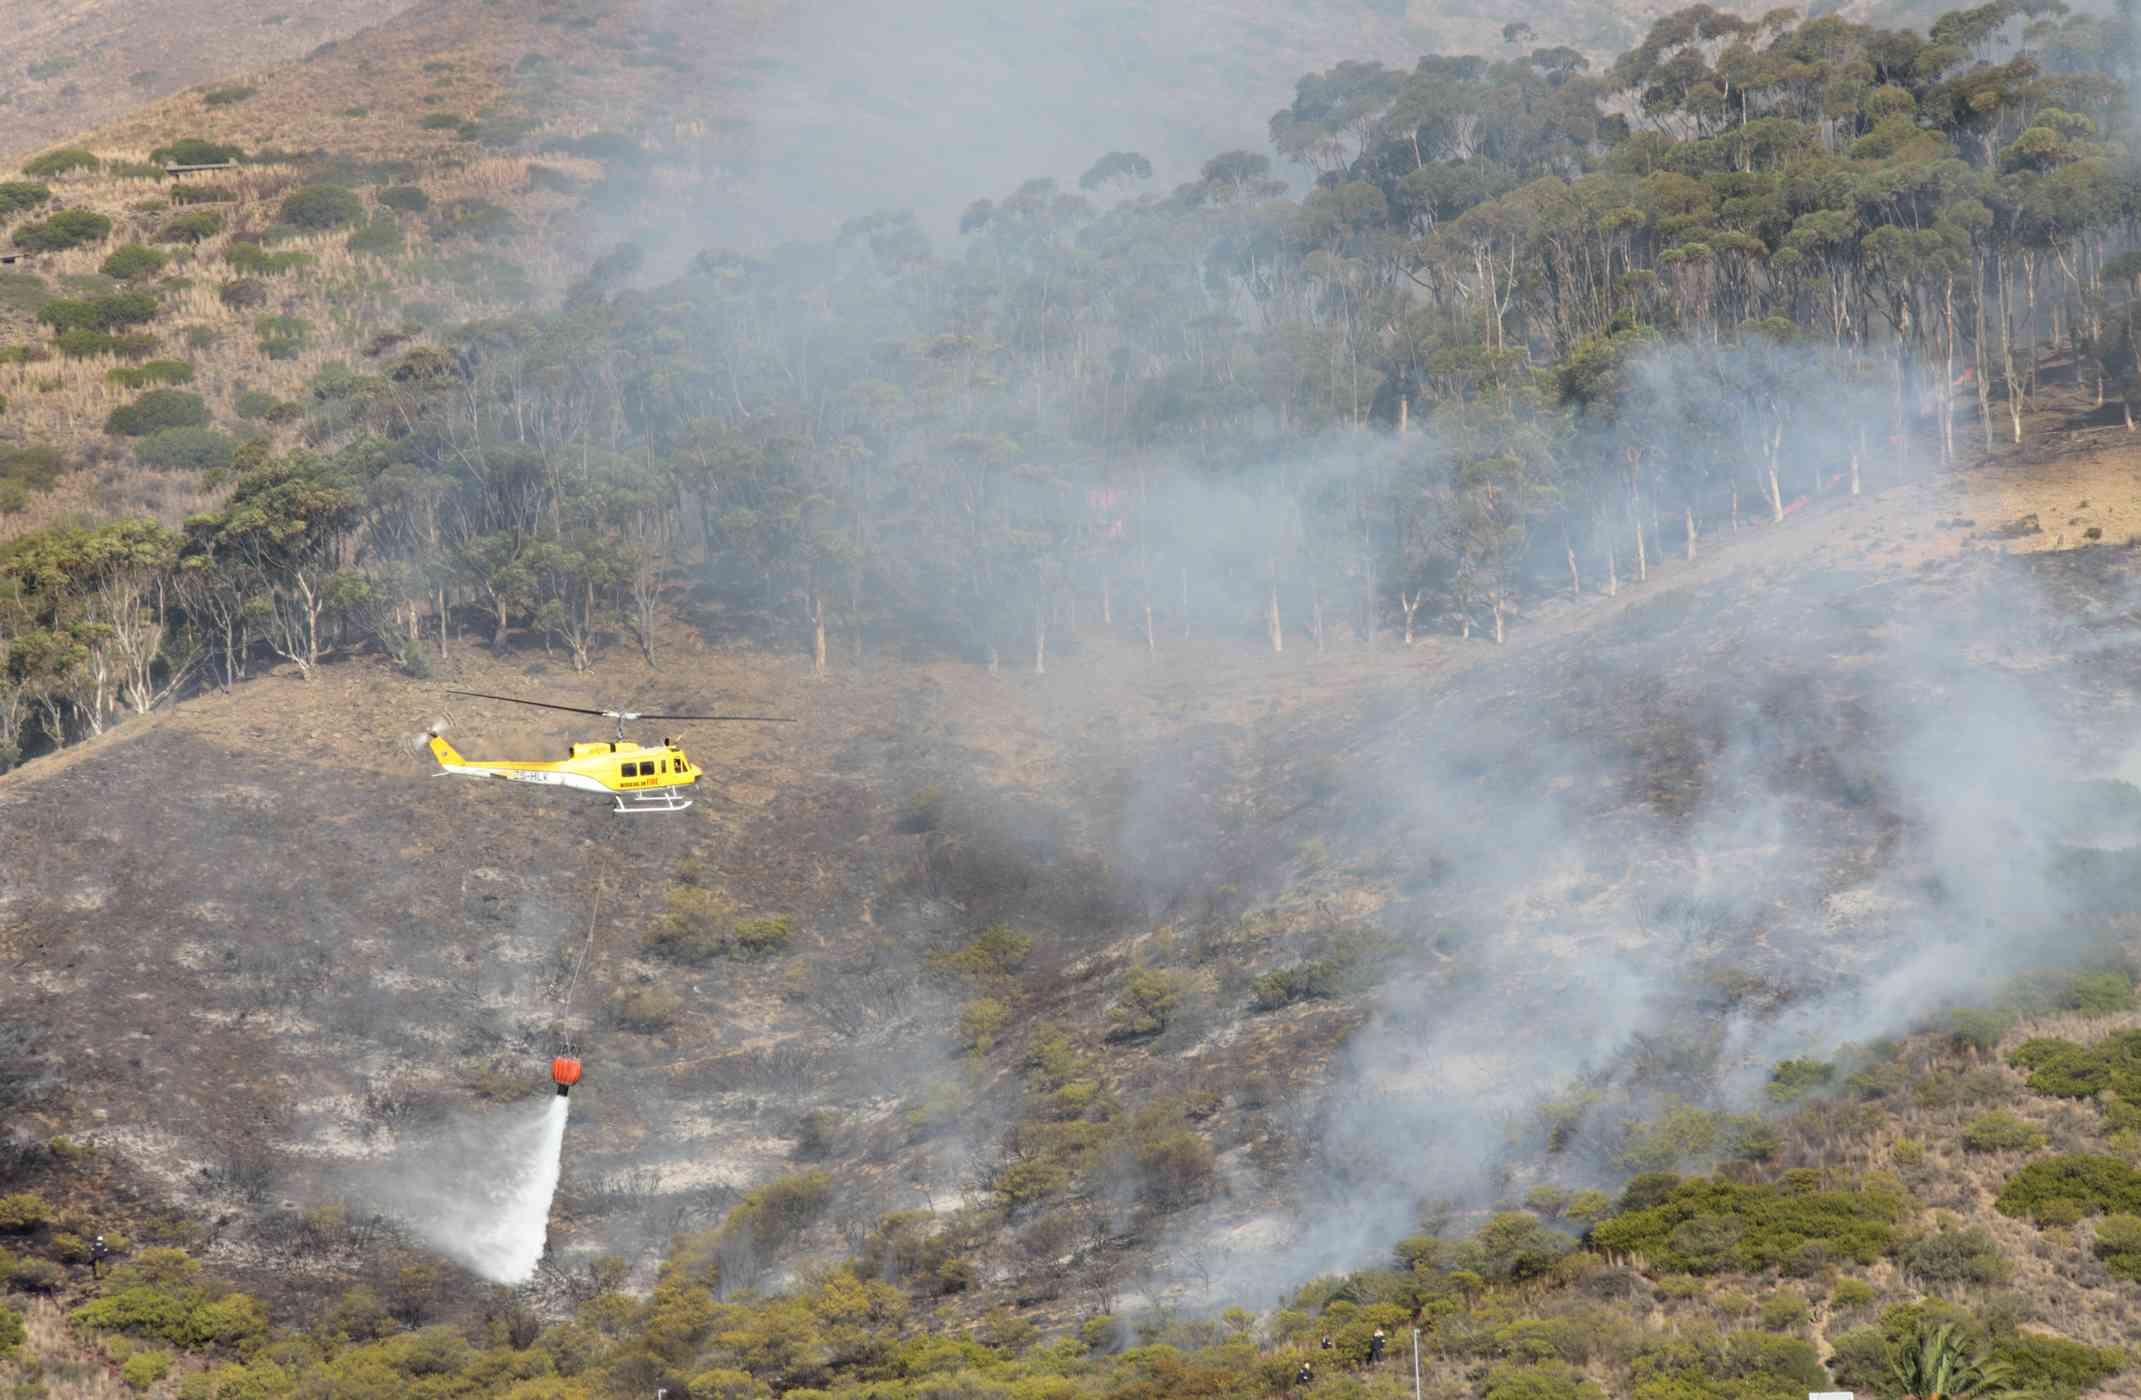 A helicopter dropping water on a wild fire.